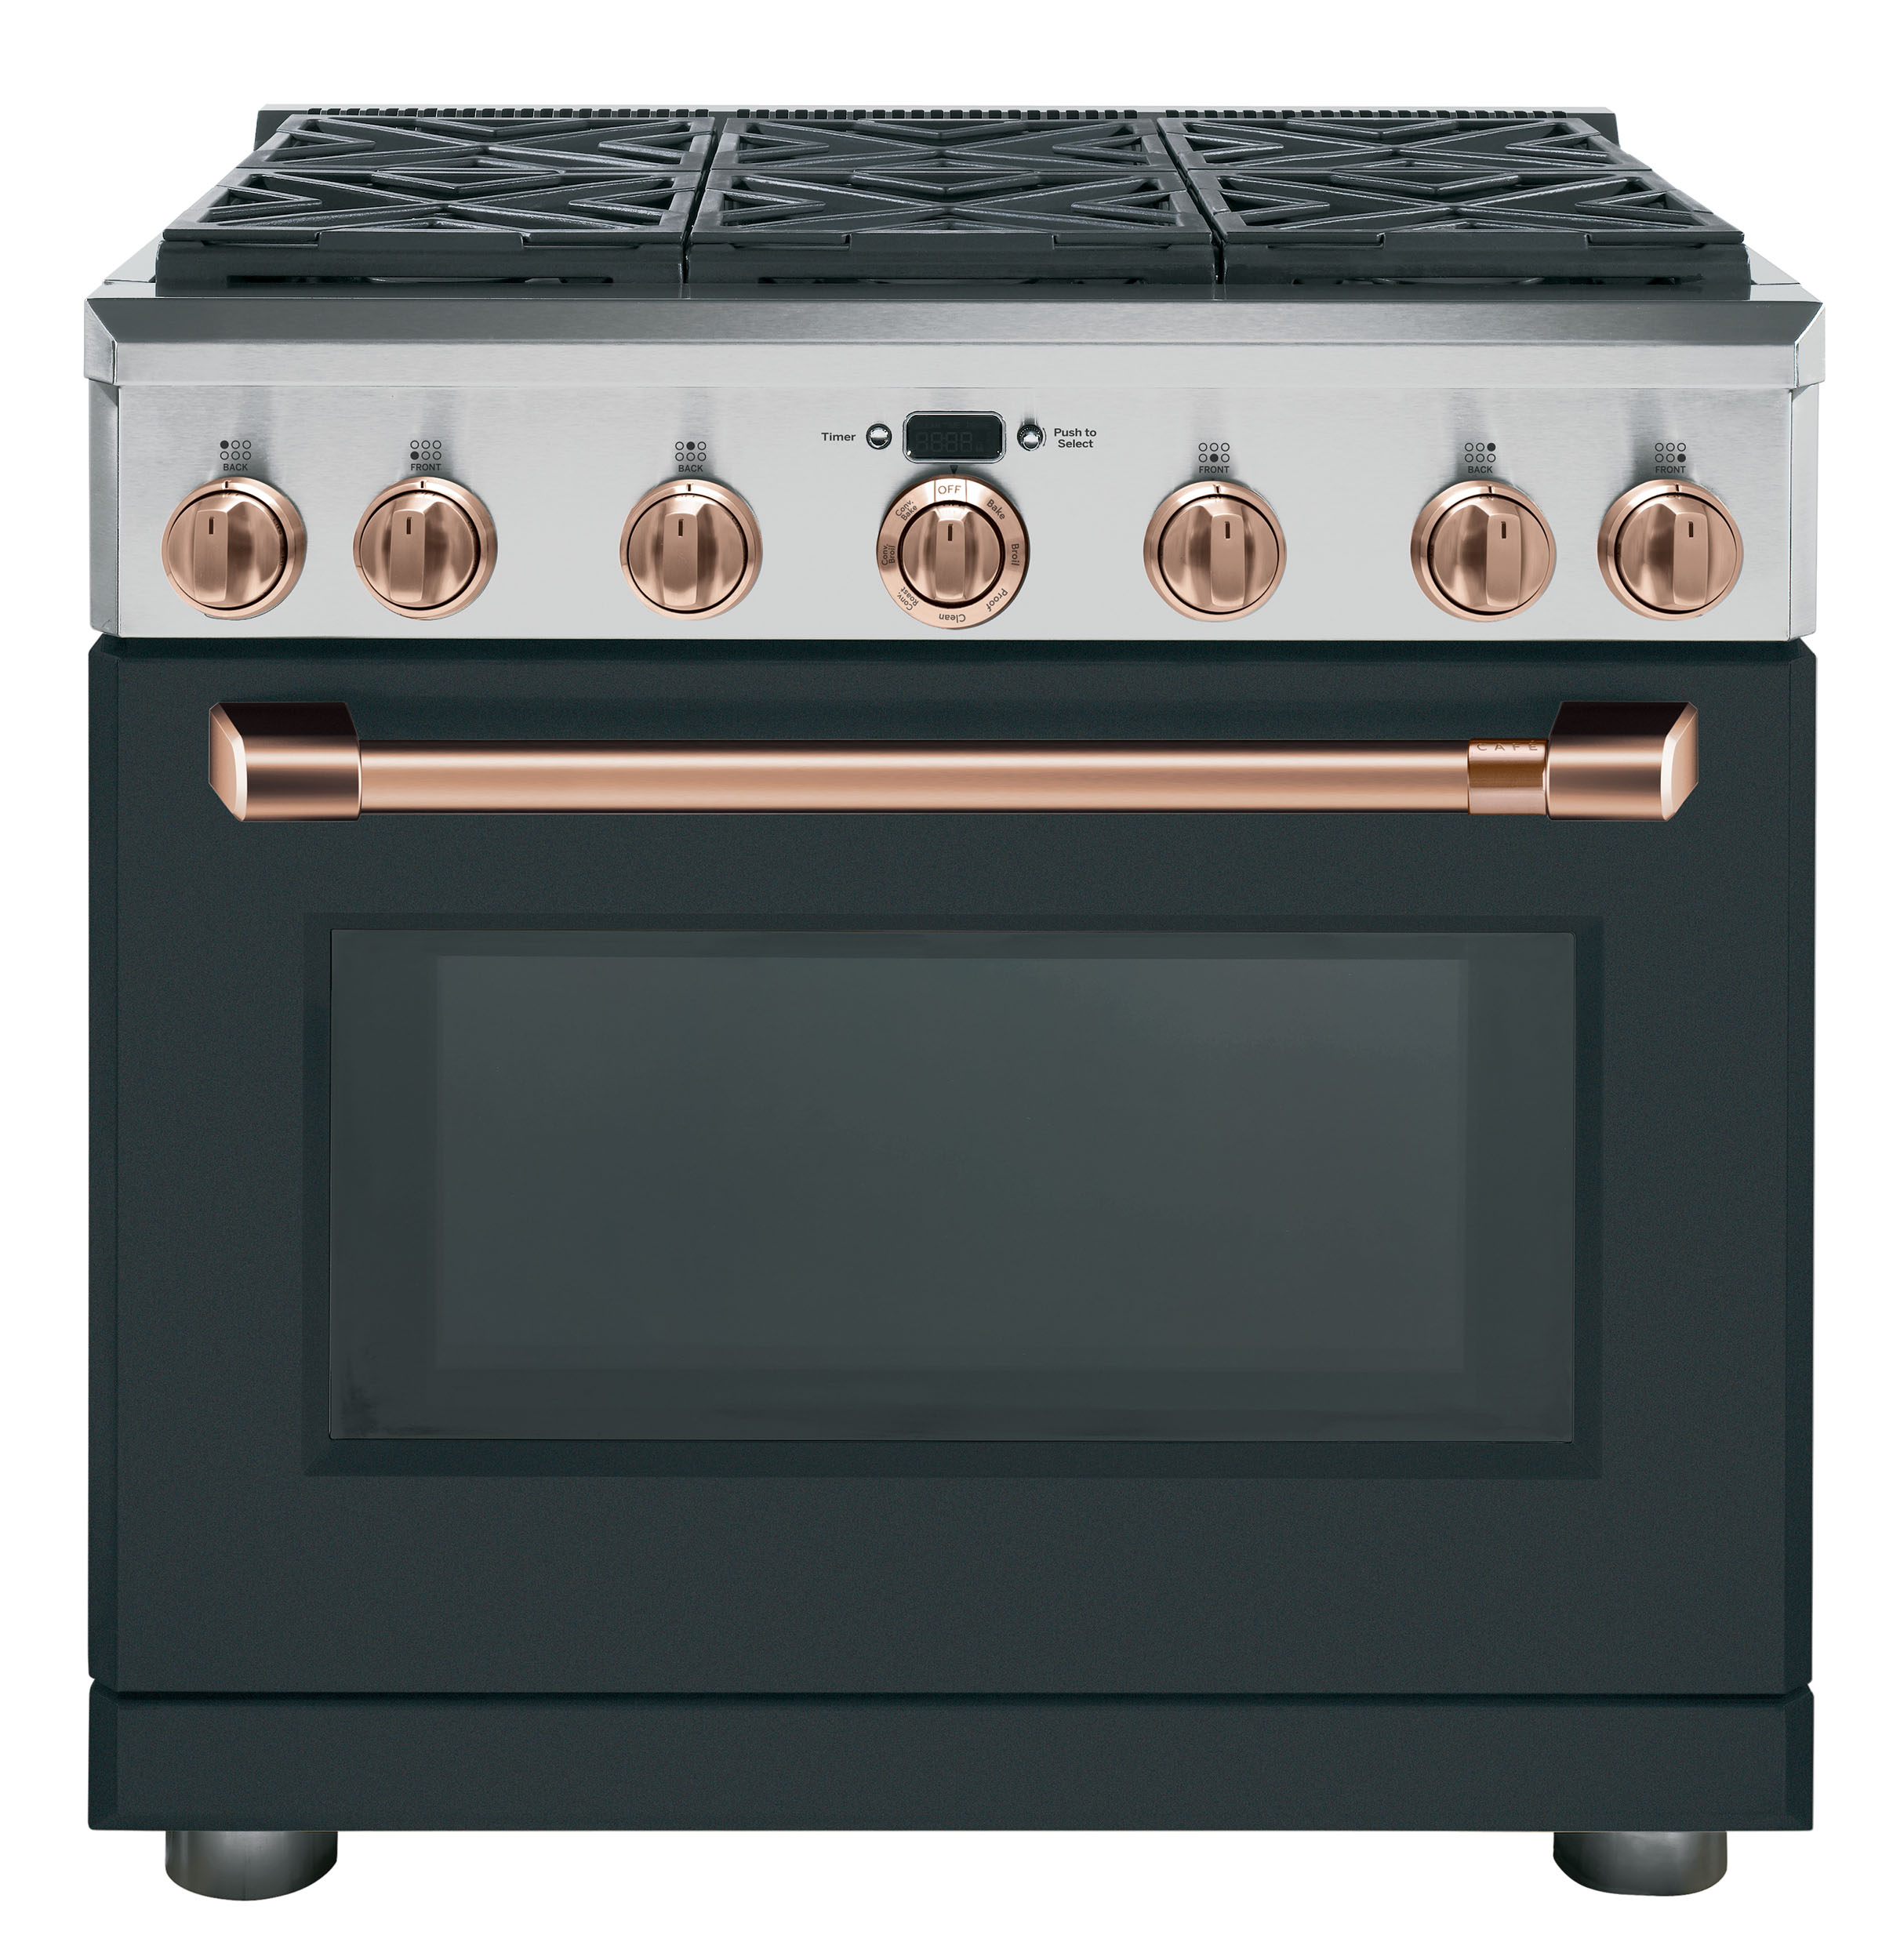 "Model: C2Y366P3MD1 | Cafe Café™ 36"" Dual-Fuel Professional Range with 6 Burners (Natural Gas)"